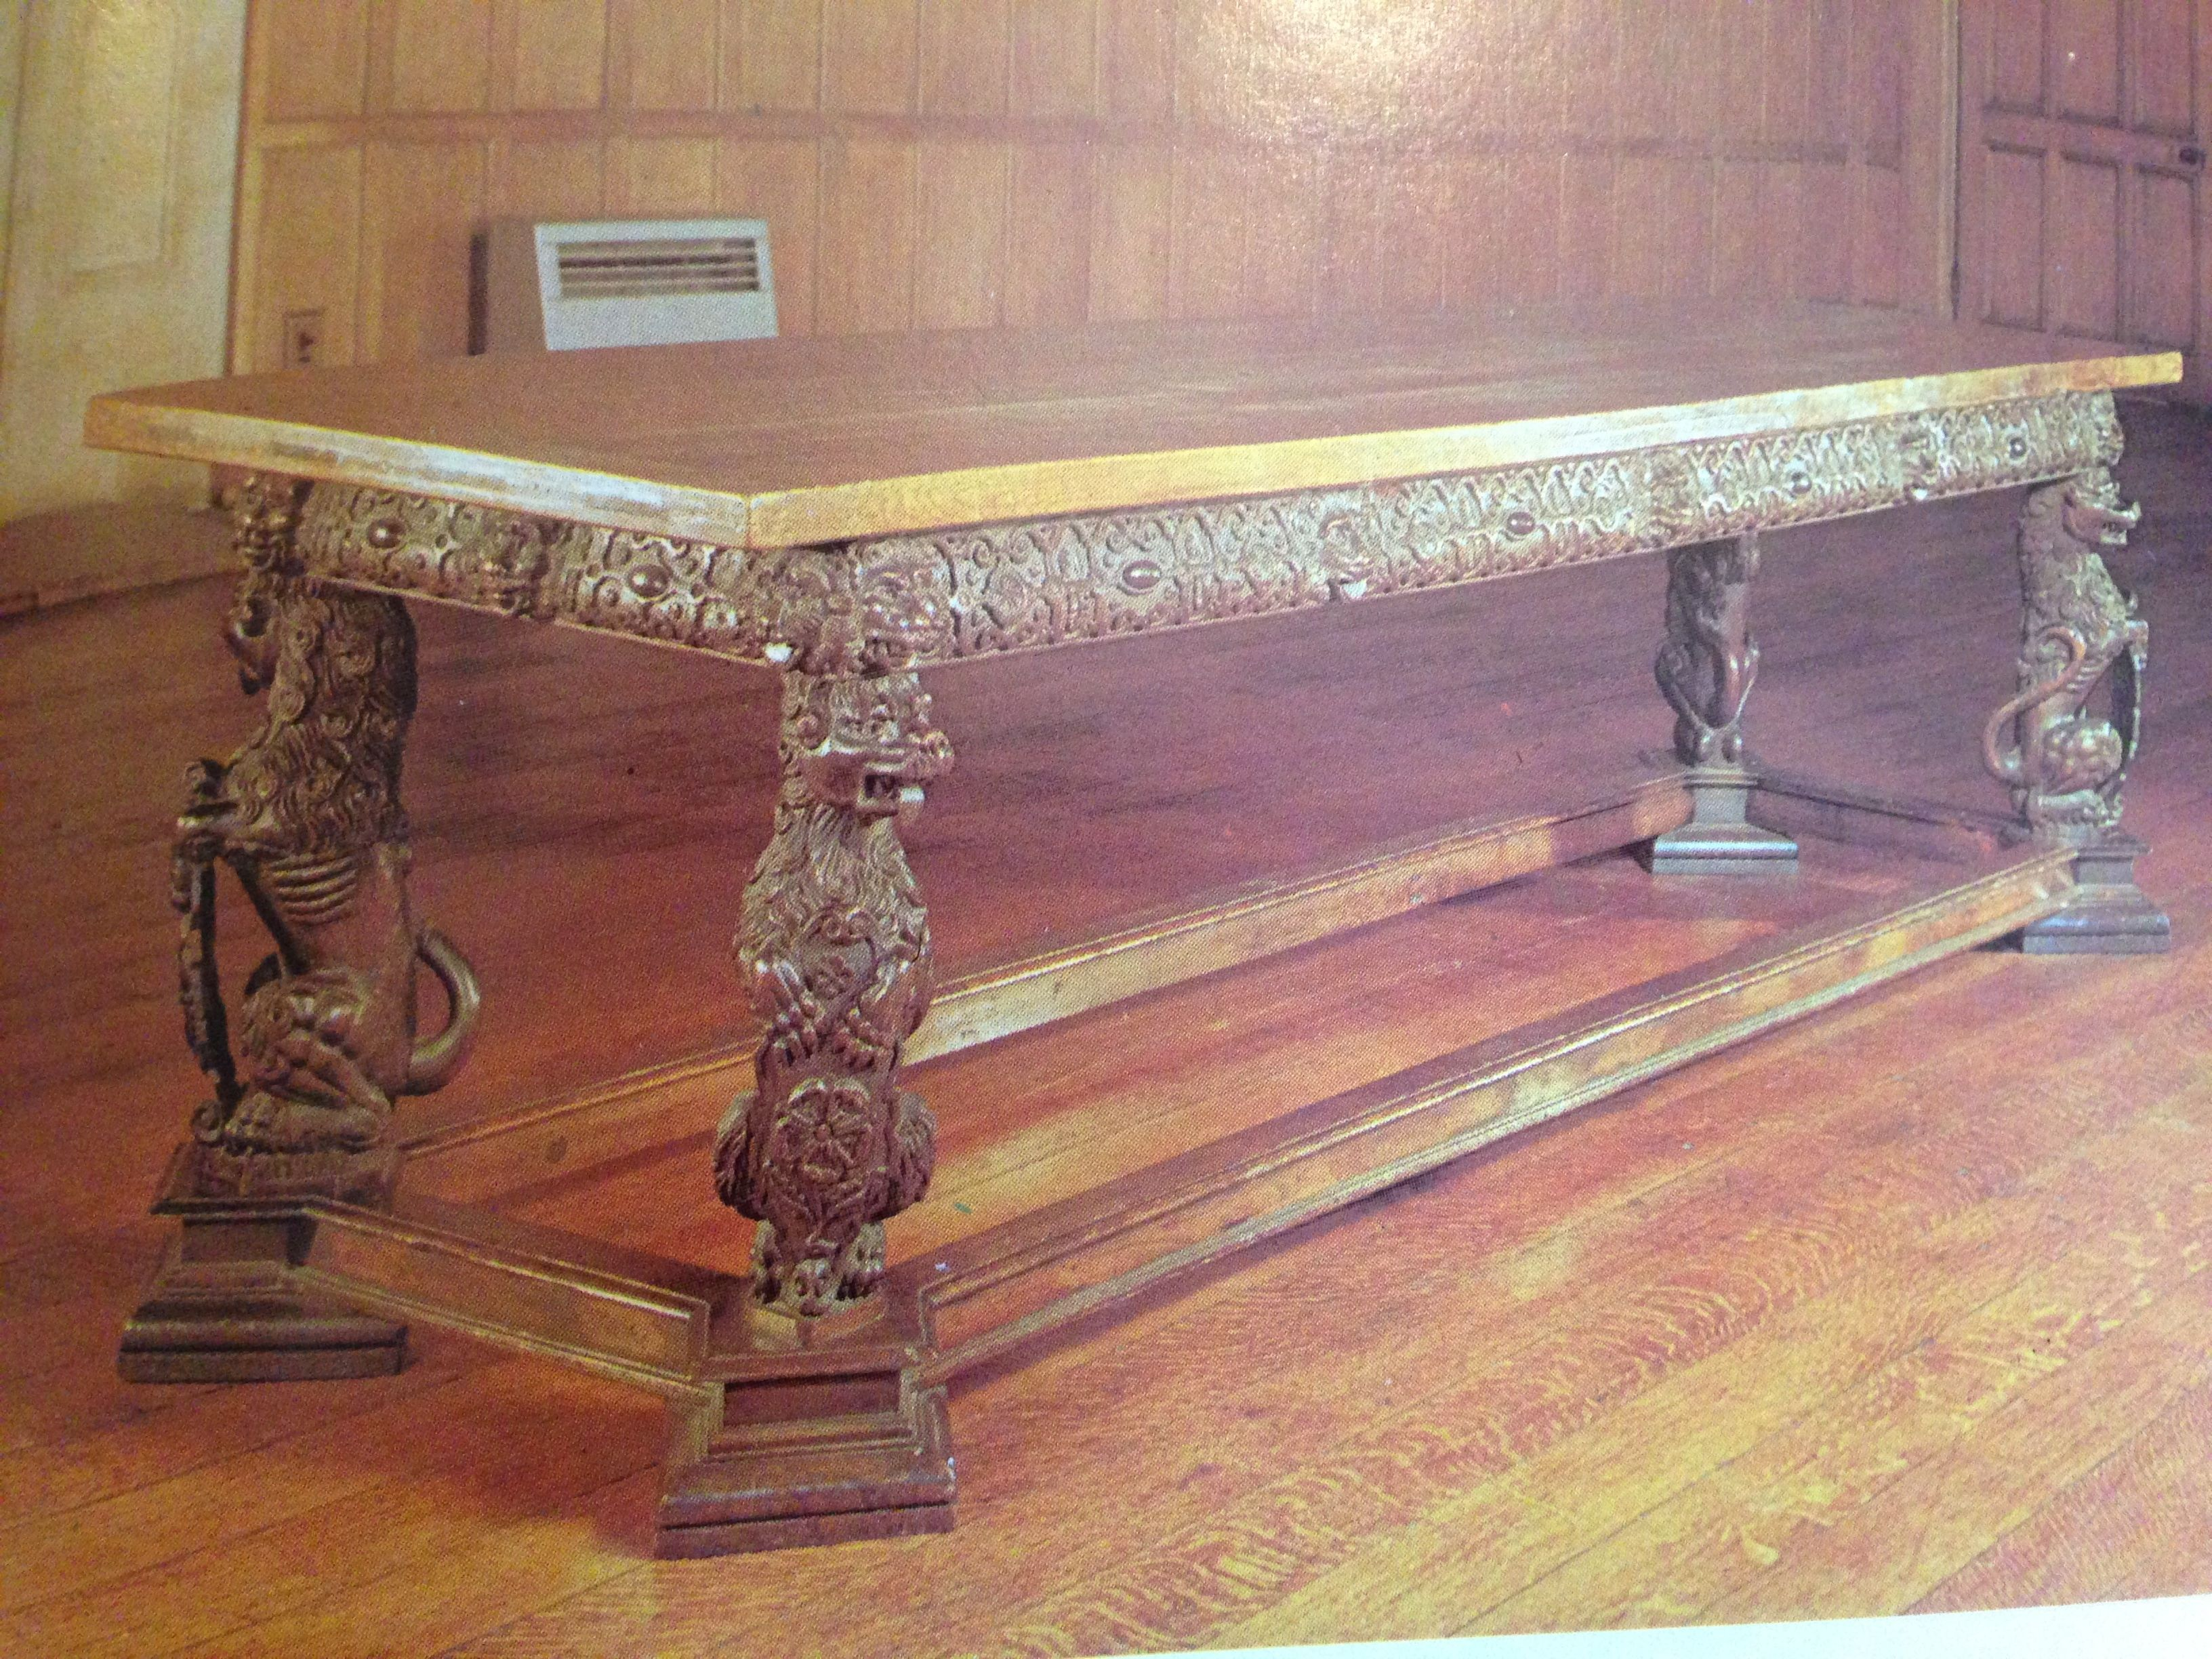 Exeter Elizabethan table of the highest quality, made for an important client of stature, the frieze rail carved with the classic Exeter strap work